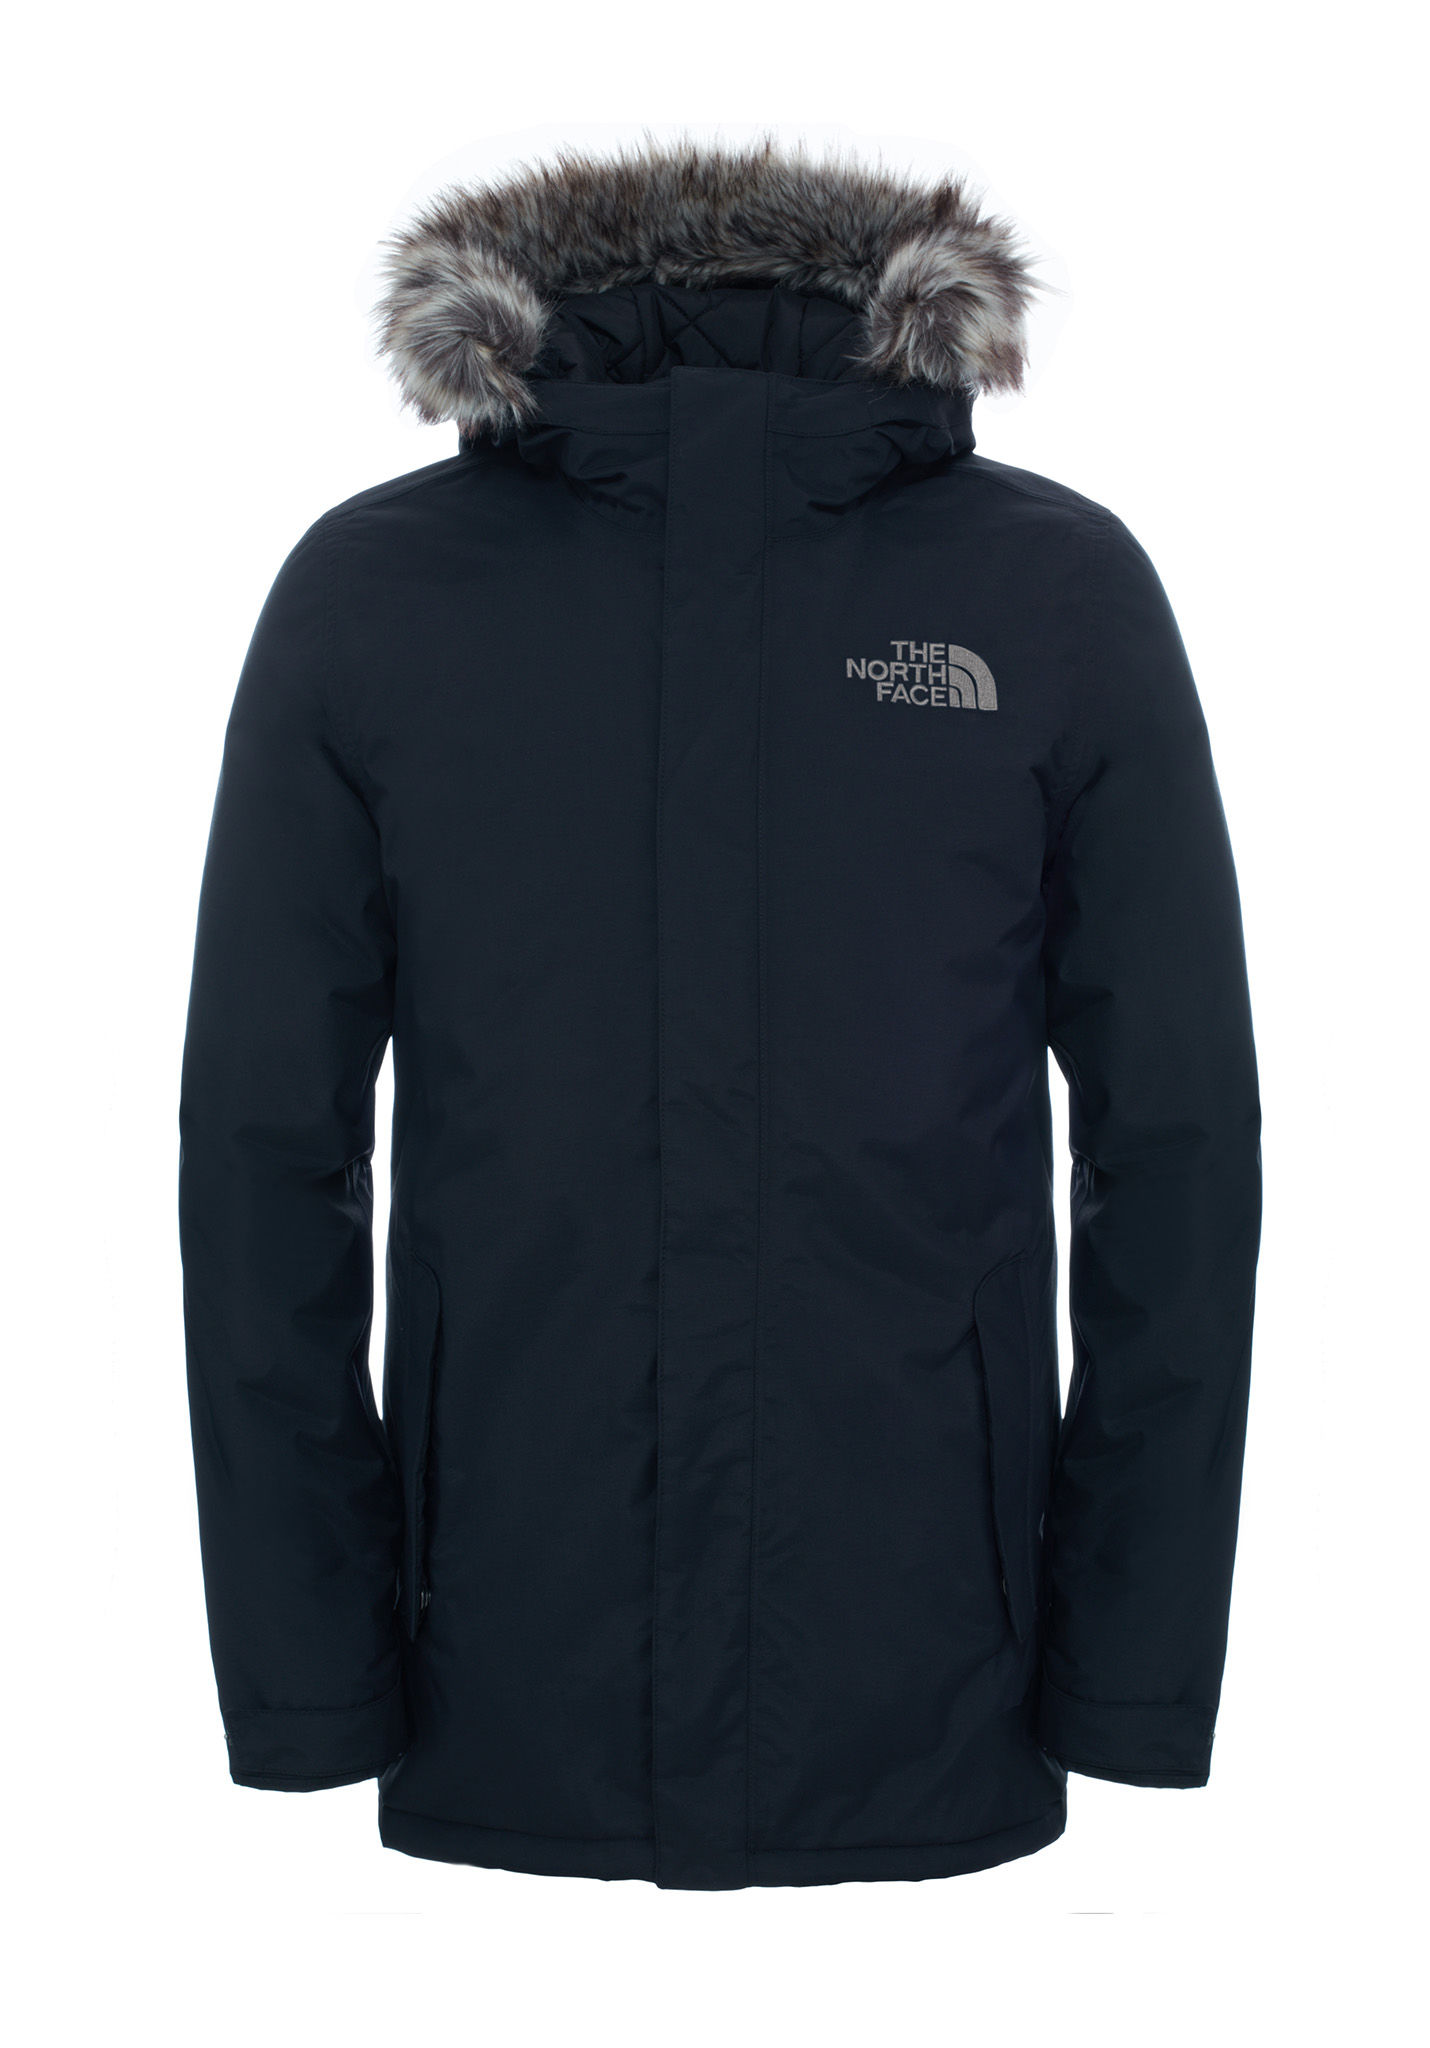 THE NORTH FACE Zaneck - Giacca tecnica per Uomo - Nero - Planet Sports a8791c0140cf